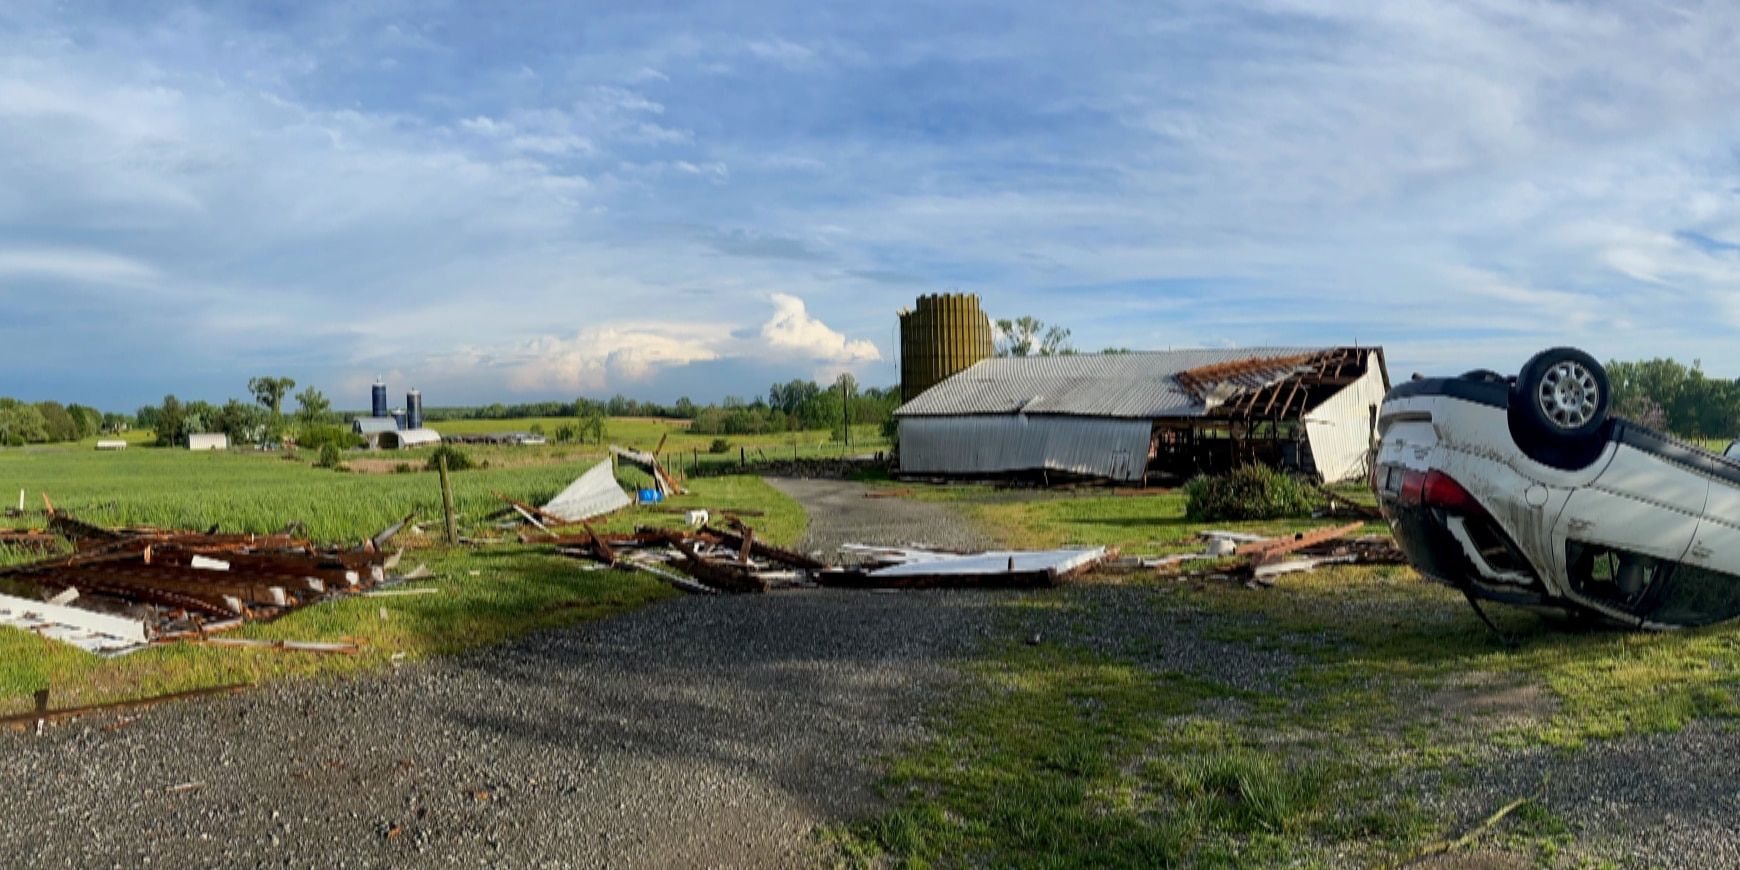 'It was just unreal': Tuesday's severe thunderstorm leaves damage in its wake